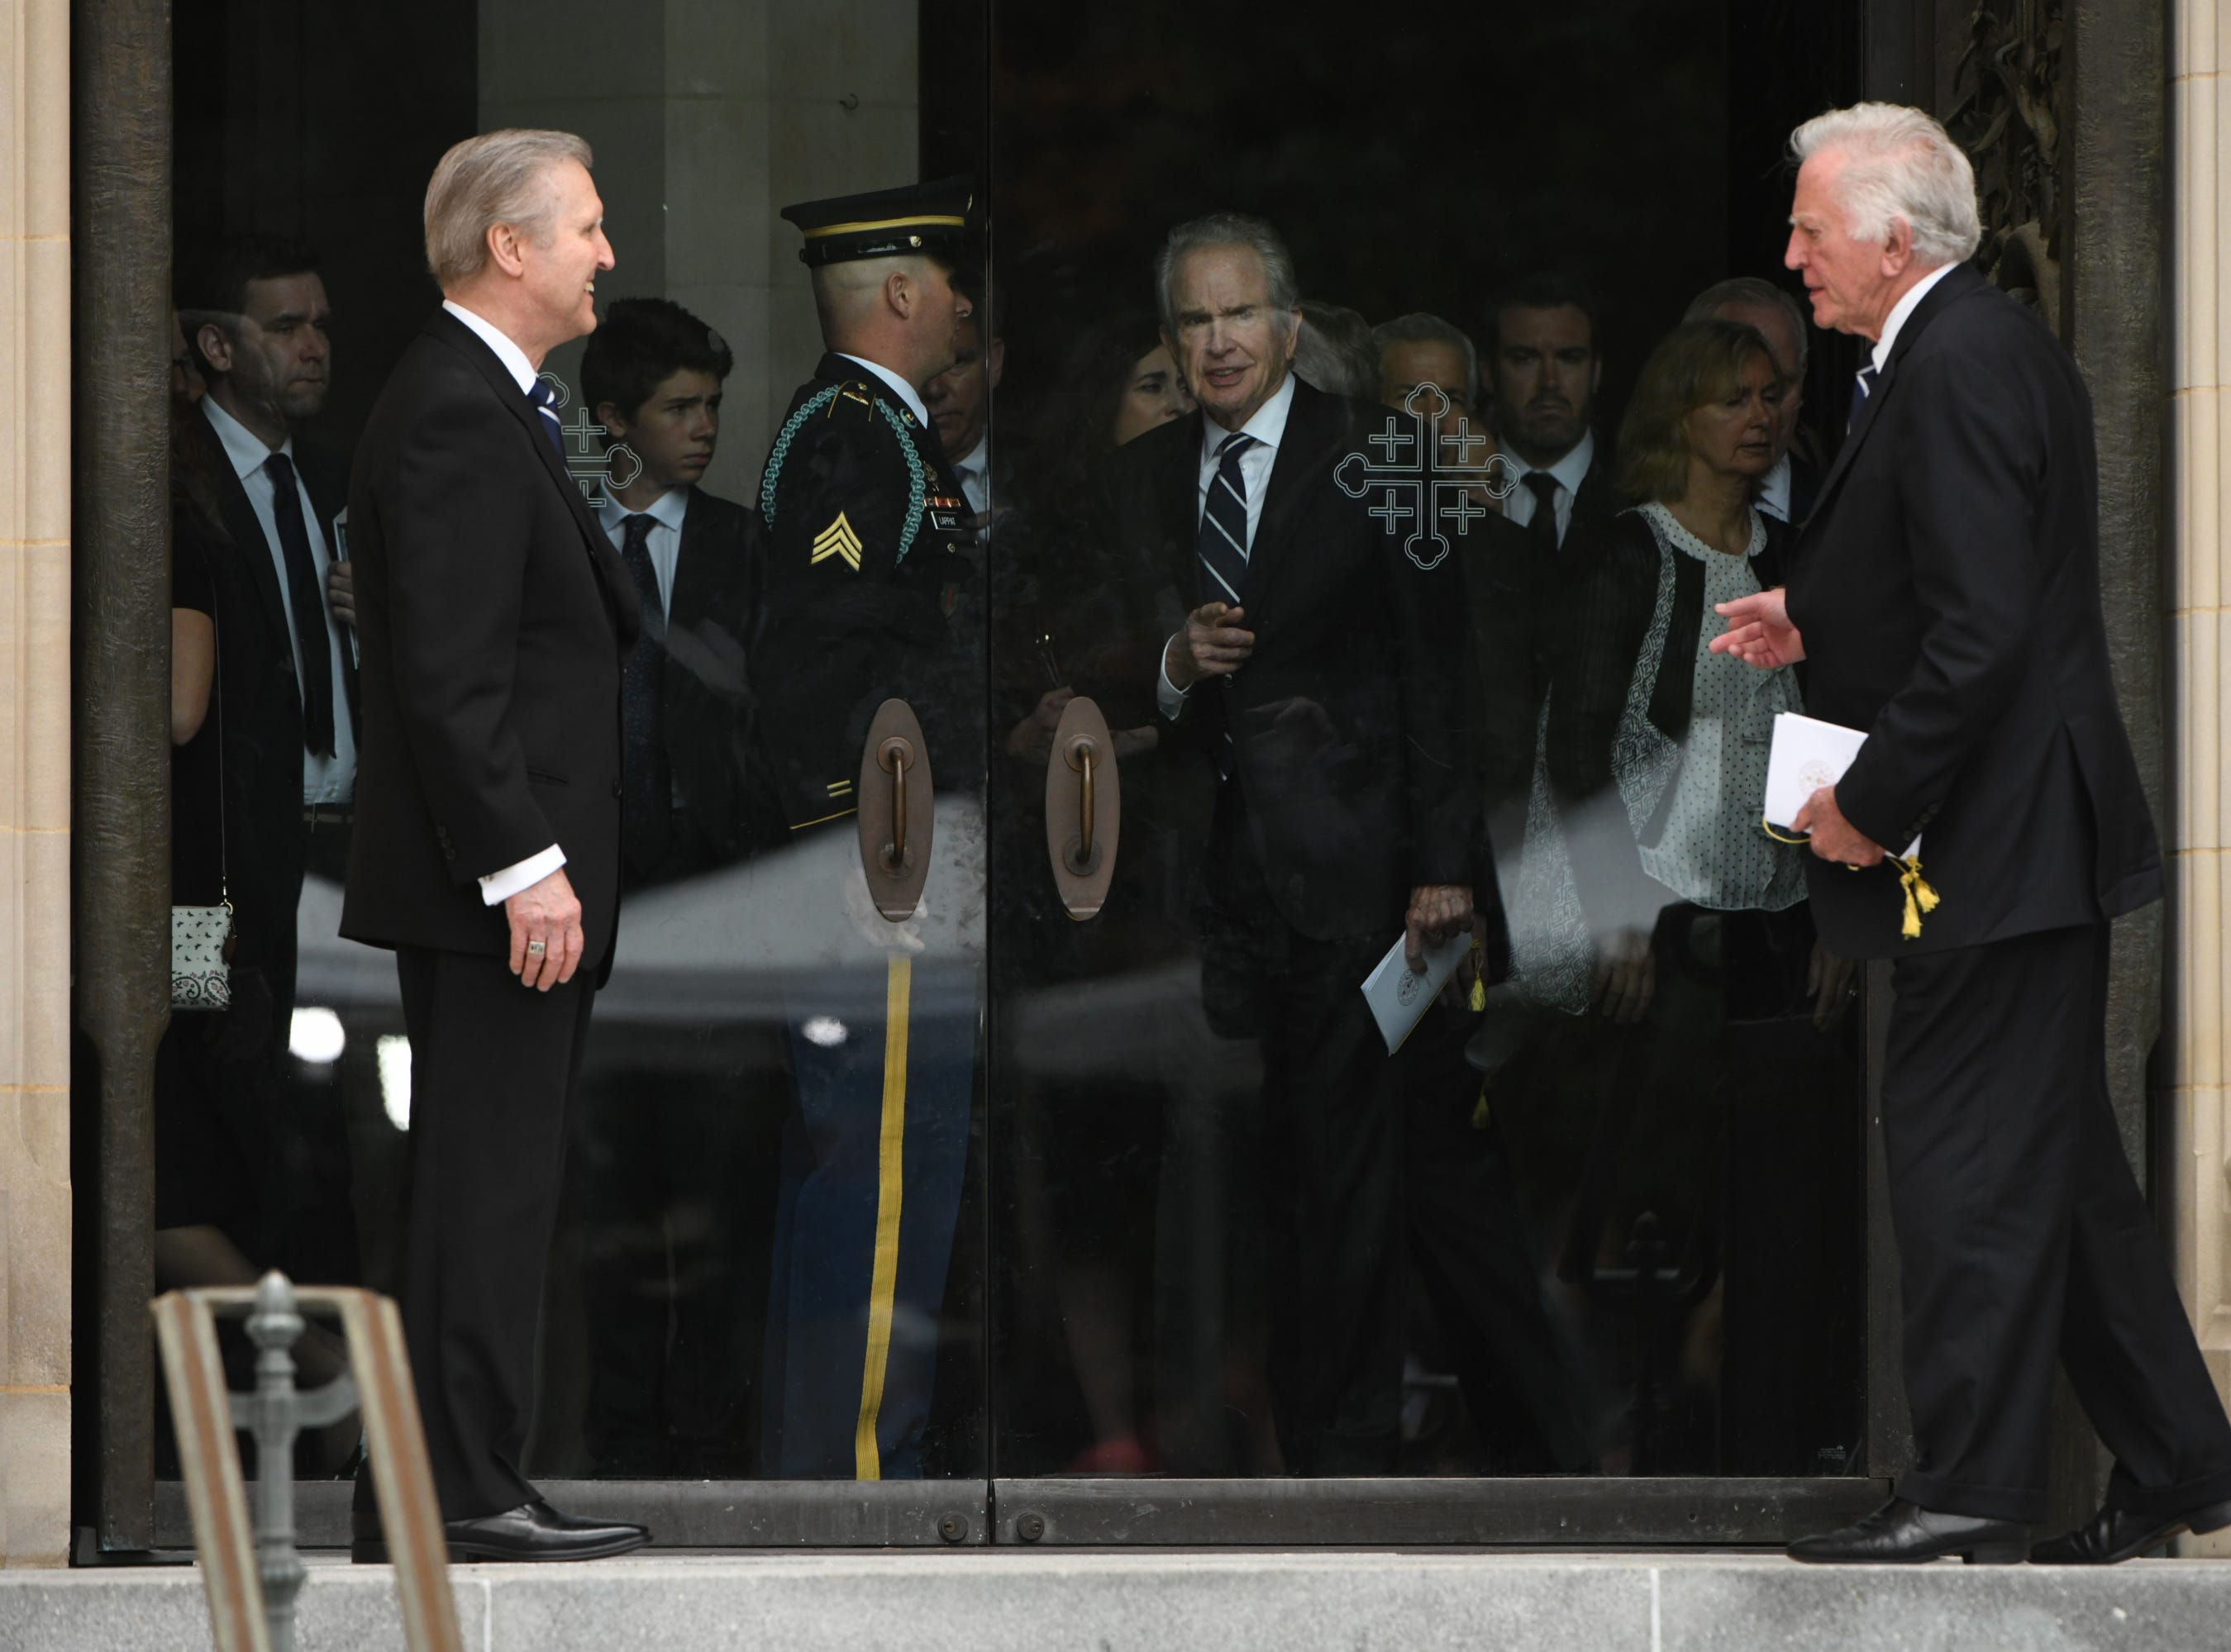 9/1/18 12:44:52 PM -- Washington, DC, U.S.A  -- Warren Beatty greets Gary Hart and William Cohen as he leaves the memorial service for John McCain at the National Cathedral in Washington on Sept. 1, 2018. Sen. McCain died on Aug. 25. --    Photo by Jasper Colt, USA TODAY Staff